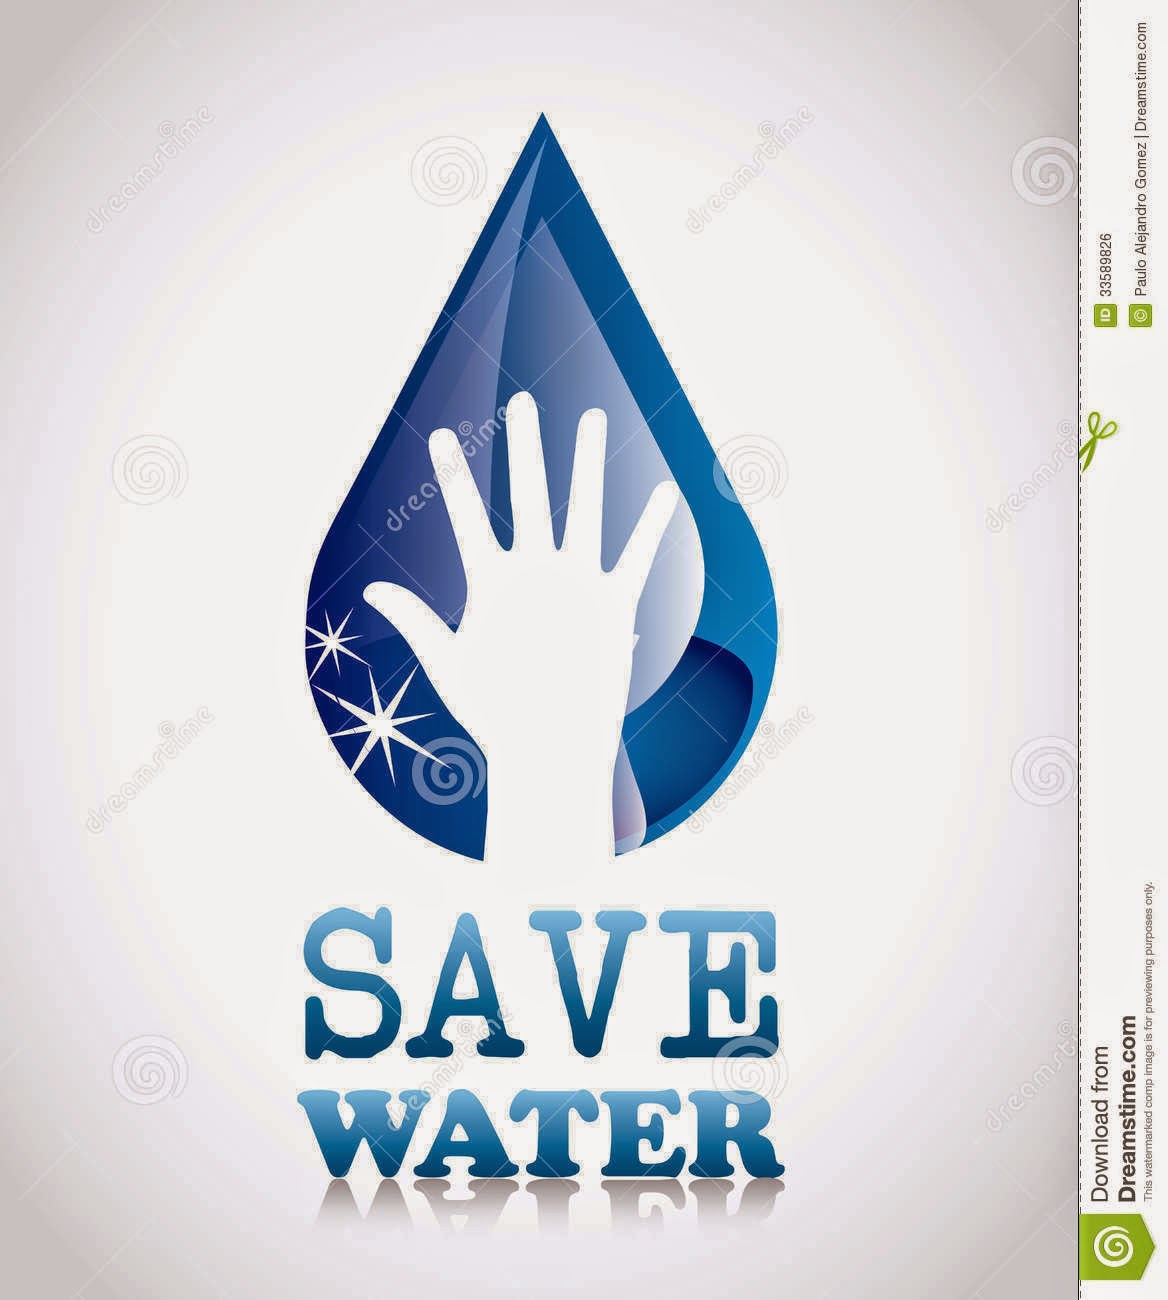 dhawal s writing place essay save water  essay save water